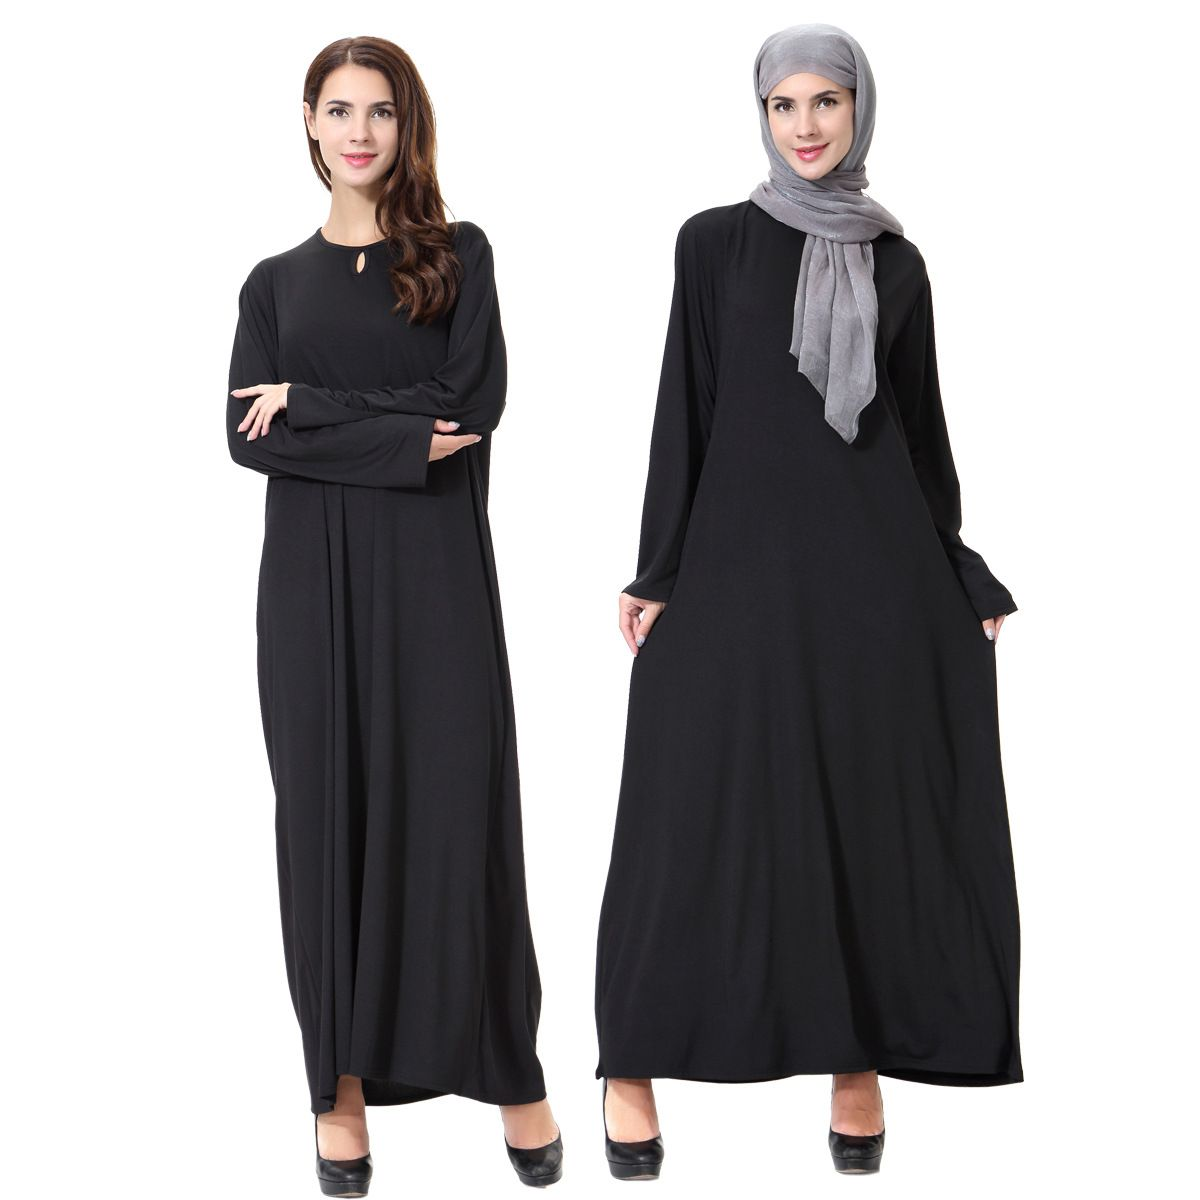 real promotion muslim women dress adult casual islamic clothing